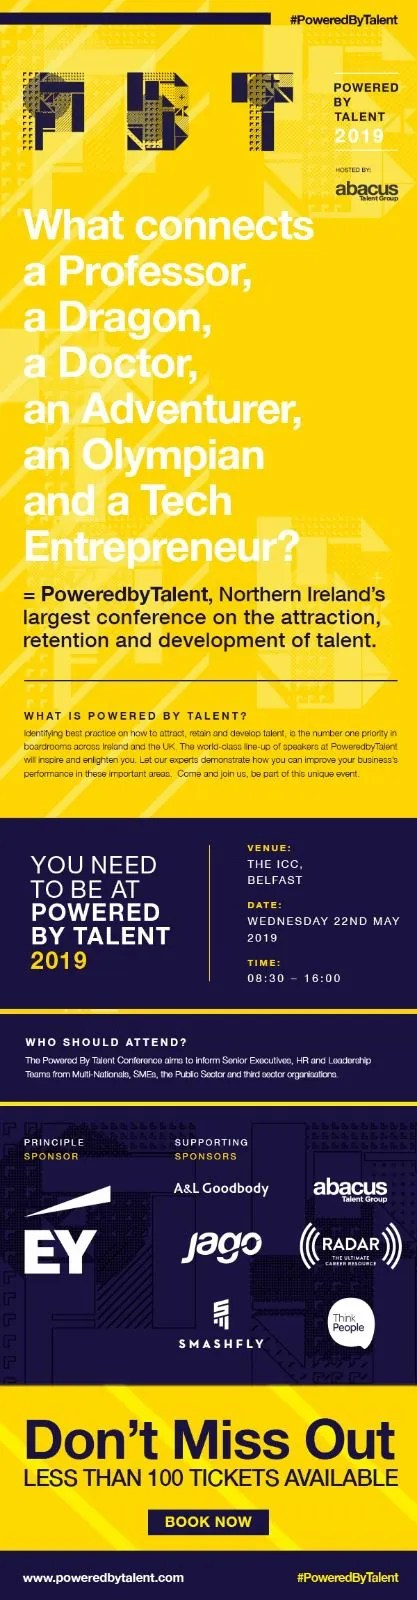 Powered By Talent 2019